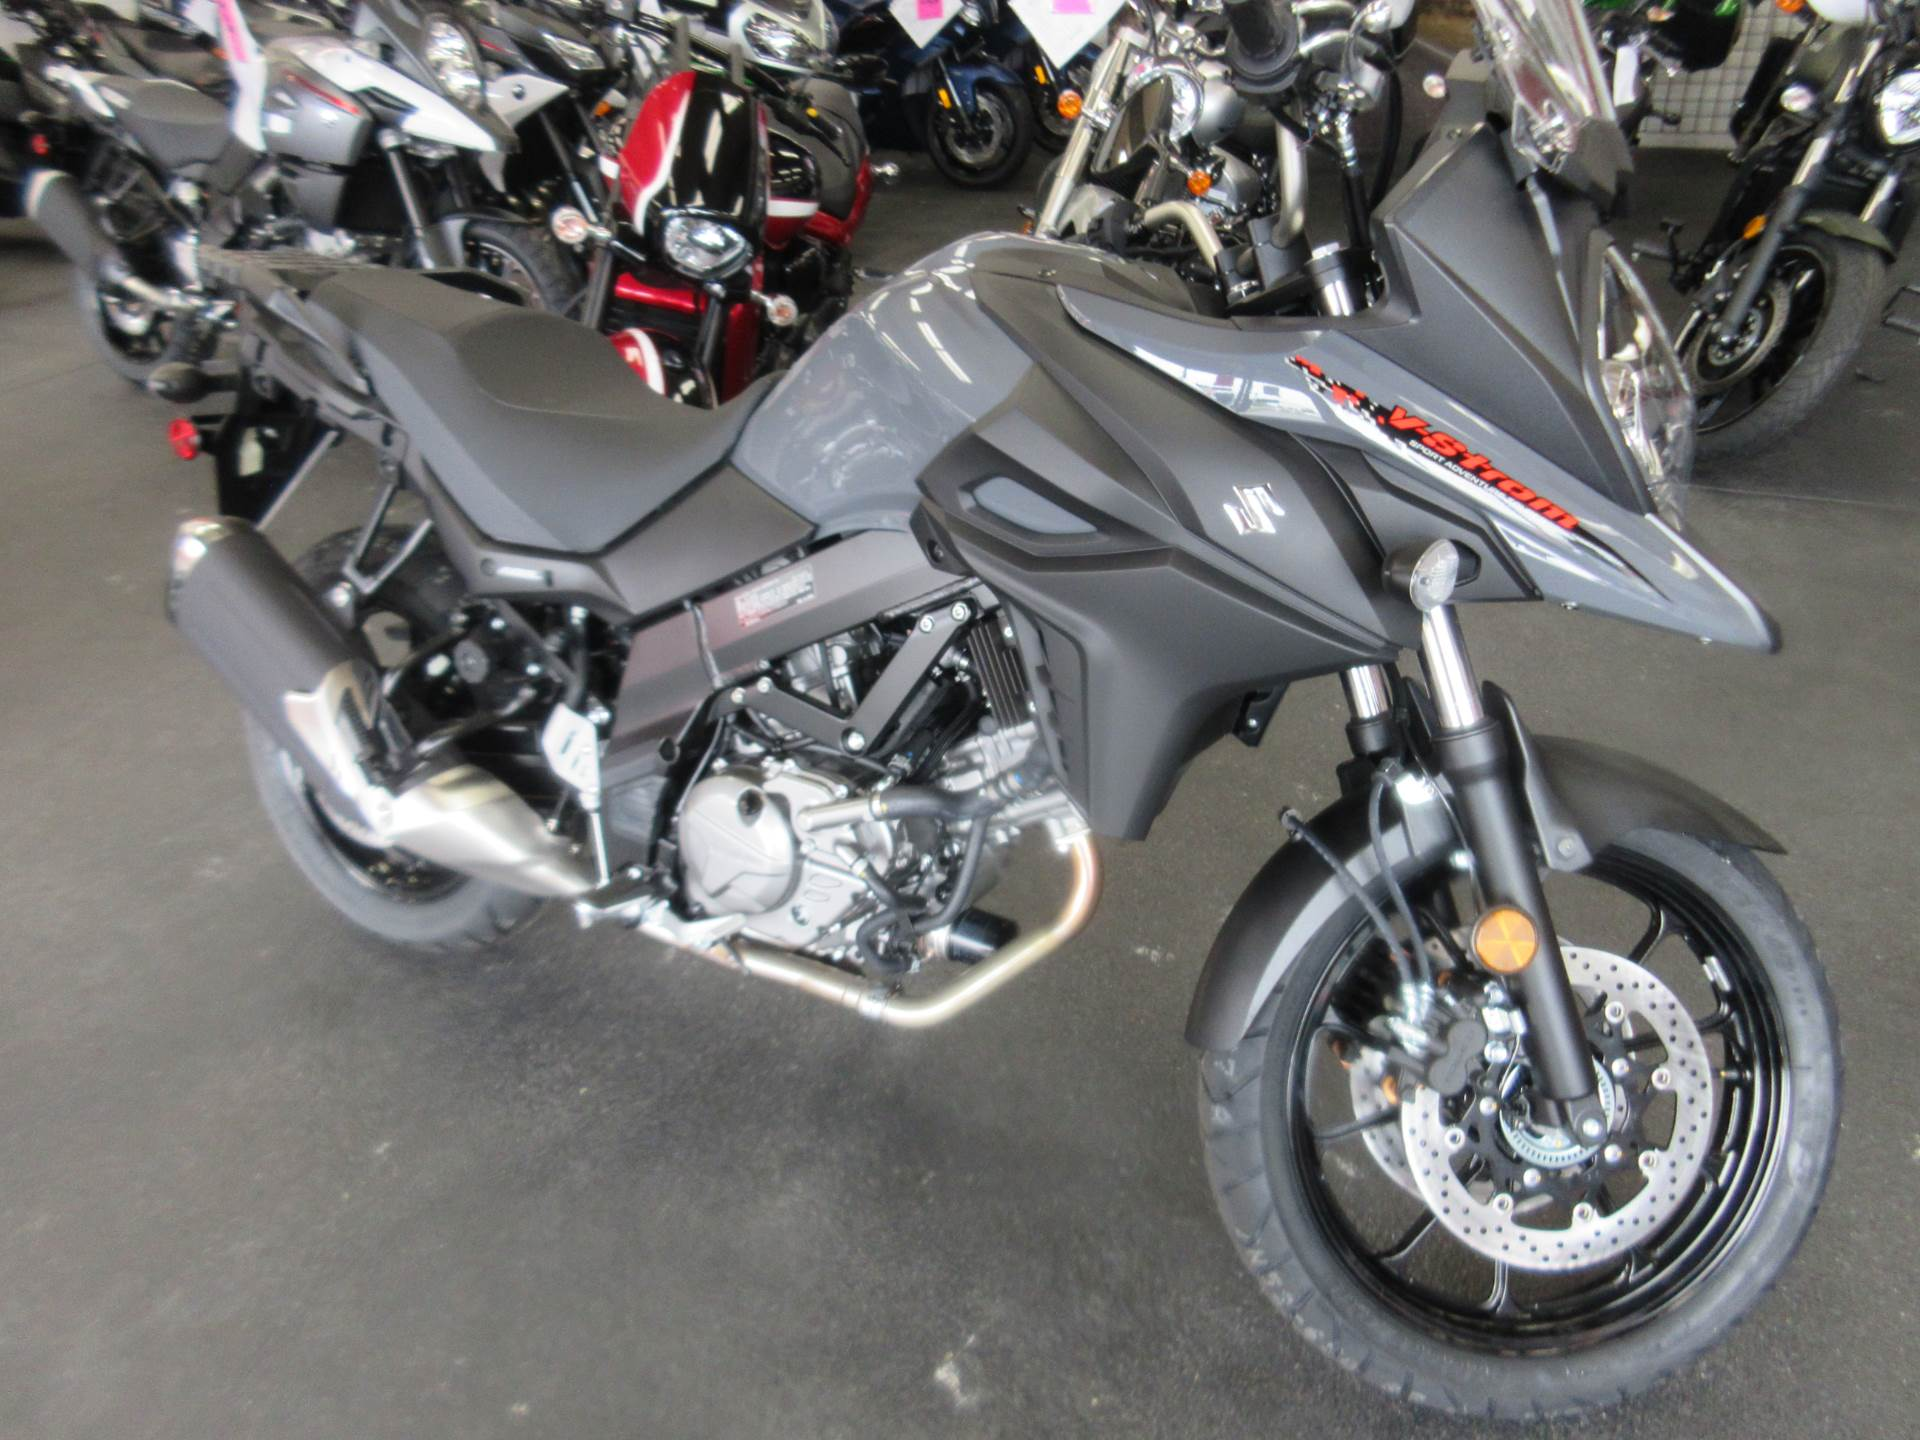 2020 Suzuki V-Strom 650 in Sacramento, California - Photo 6